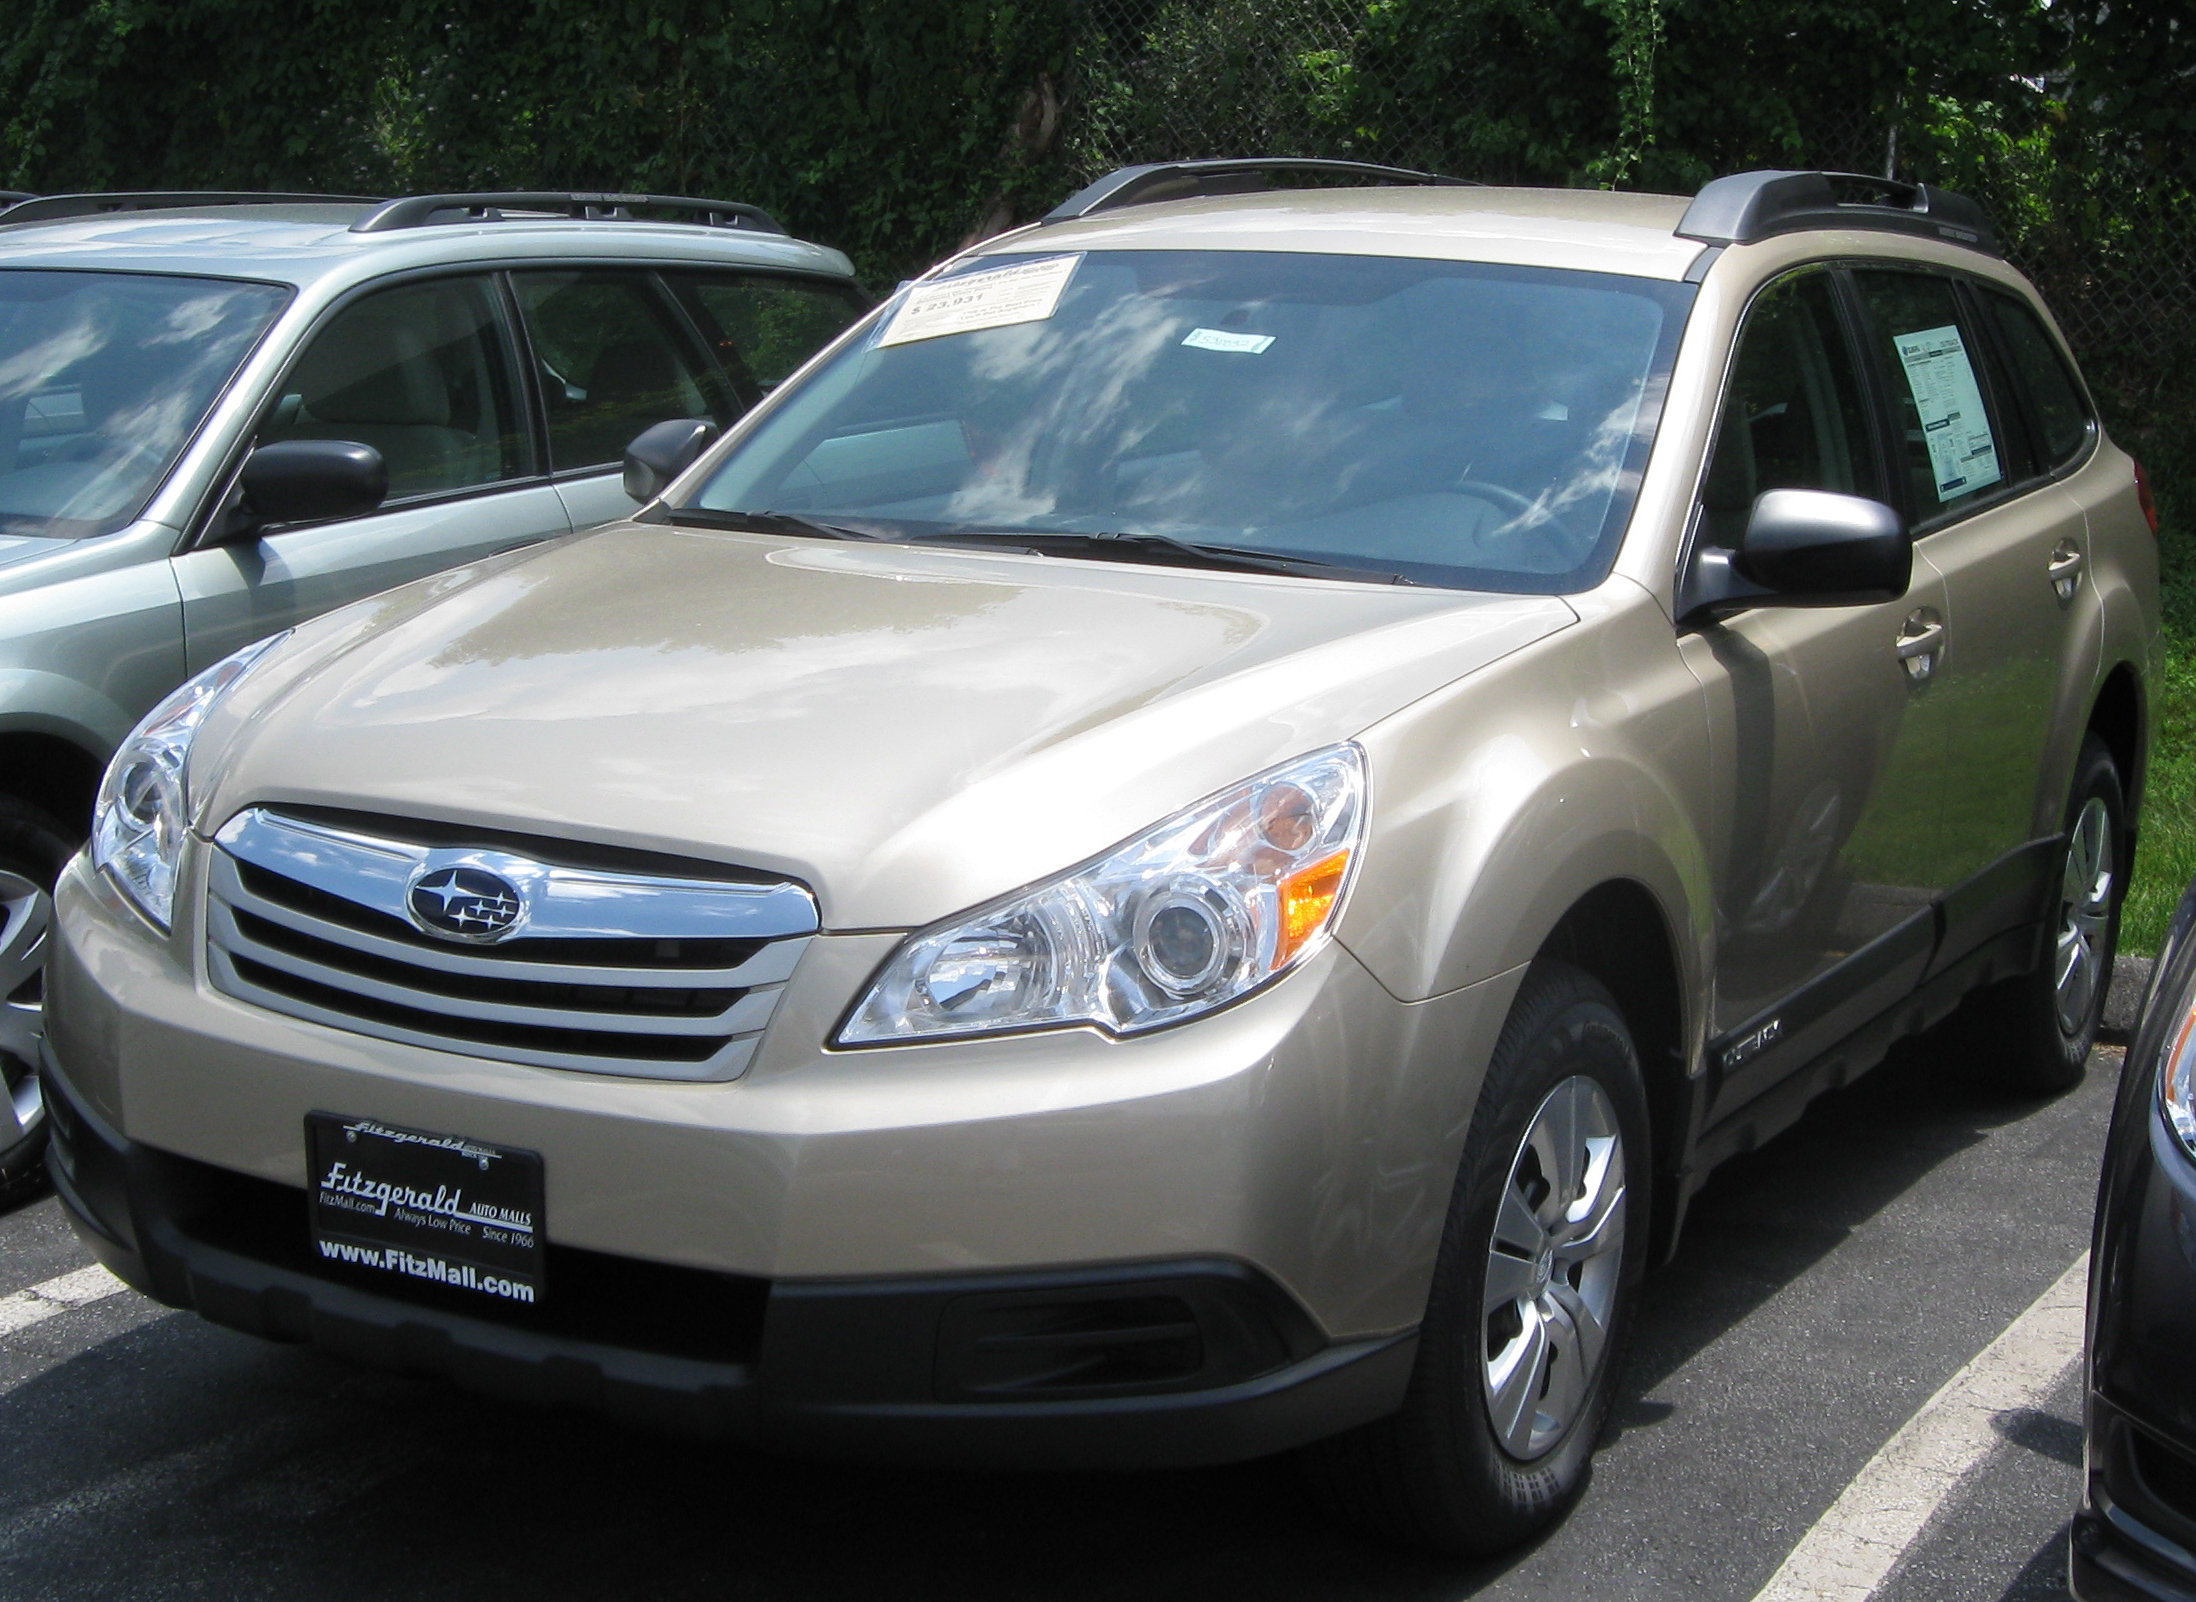 2010 subaru legacy outback iv pictures information and specs auto. Black Bedroom Furniture Sets. Home Design Ideas